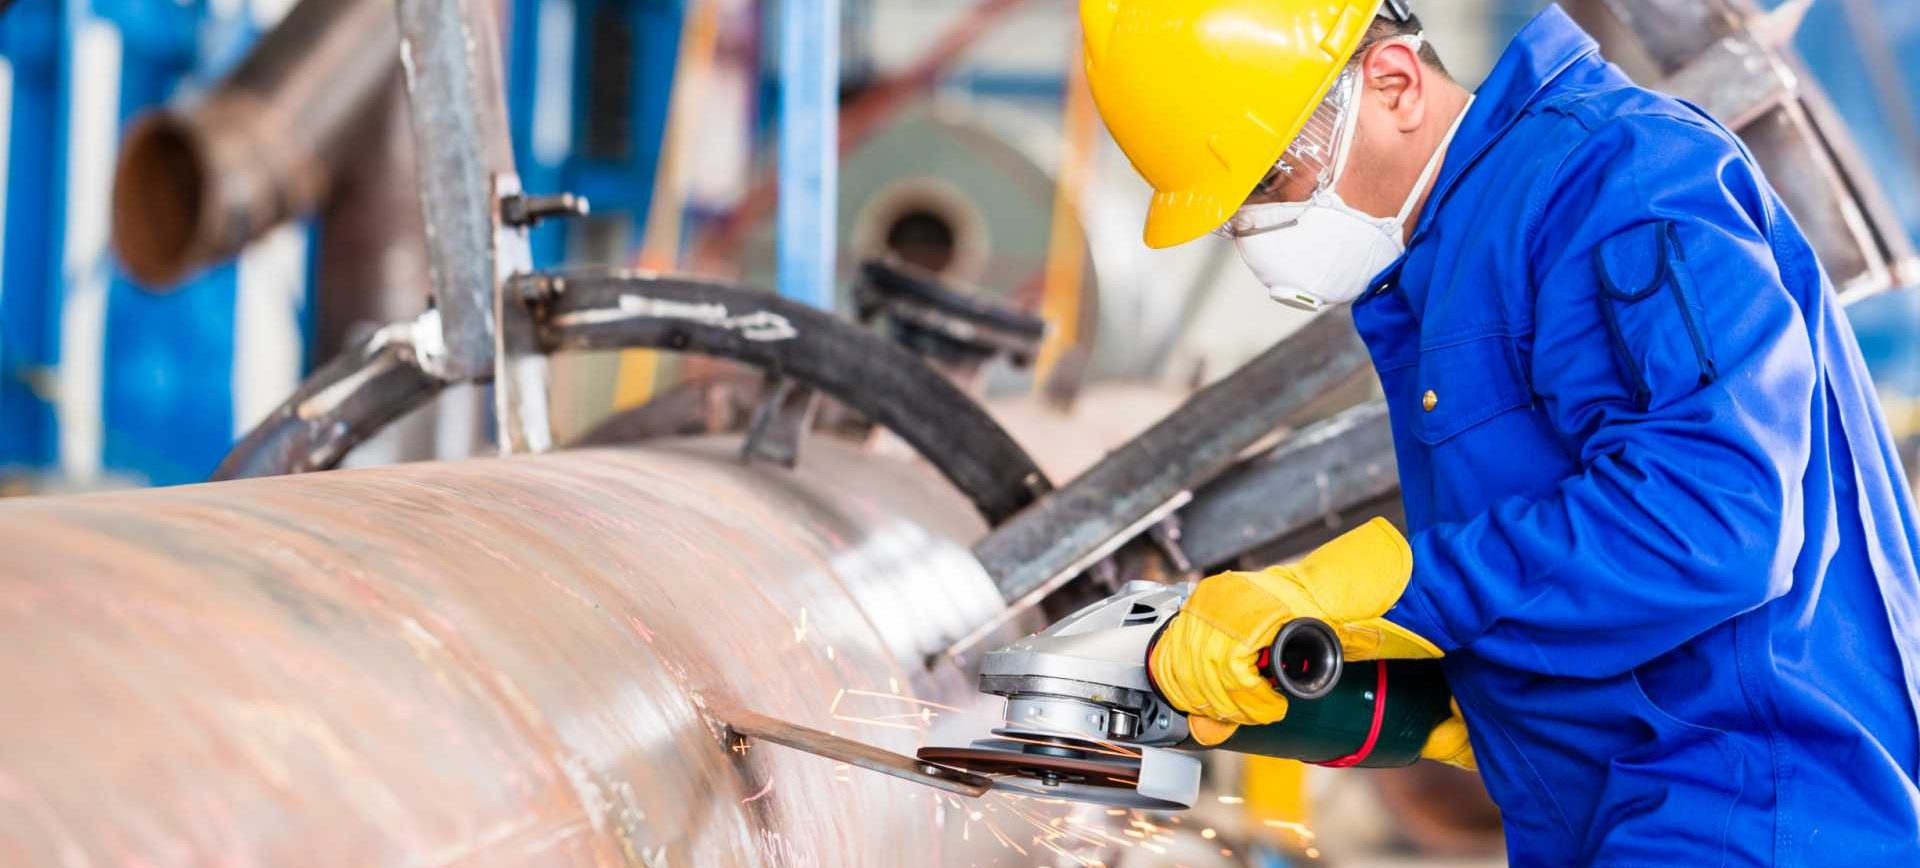 Industrial worker in manufacturing plant grinding to finish a pipeline - shutterstock_454261678 (1)